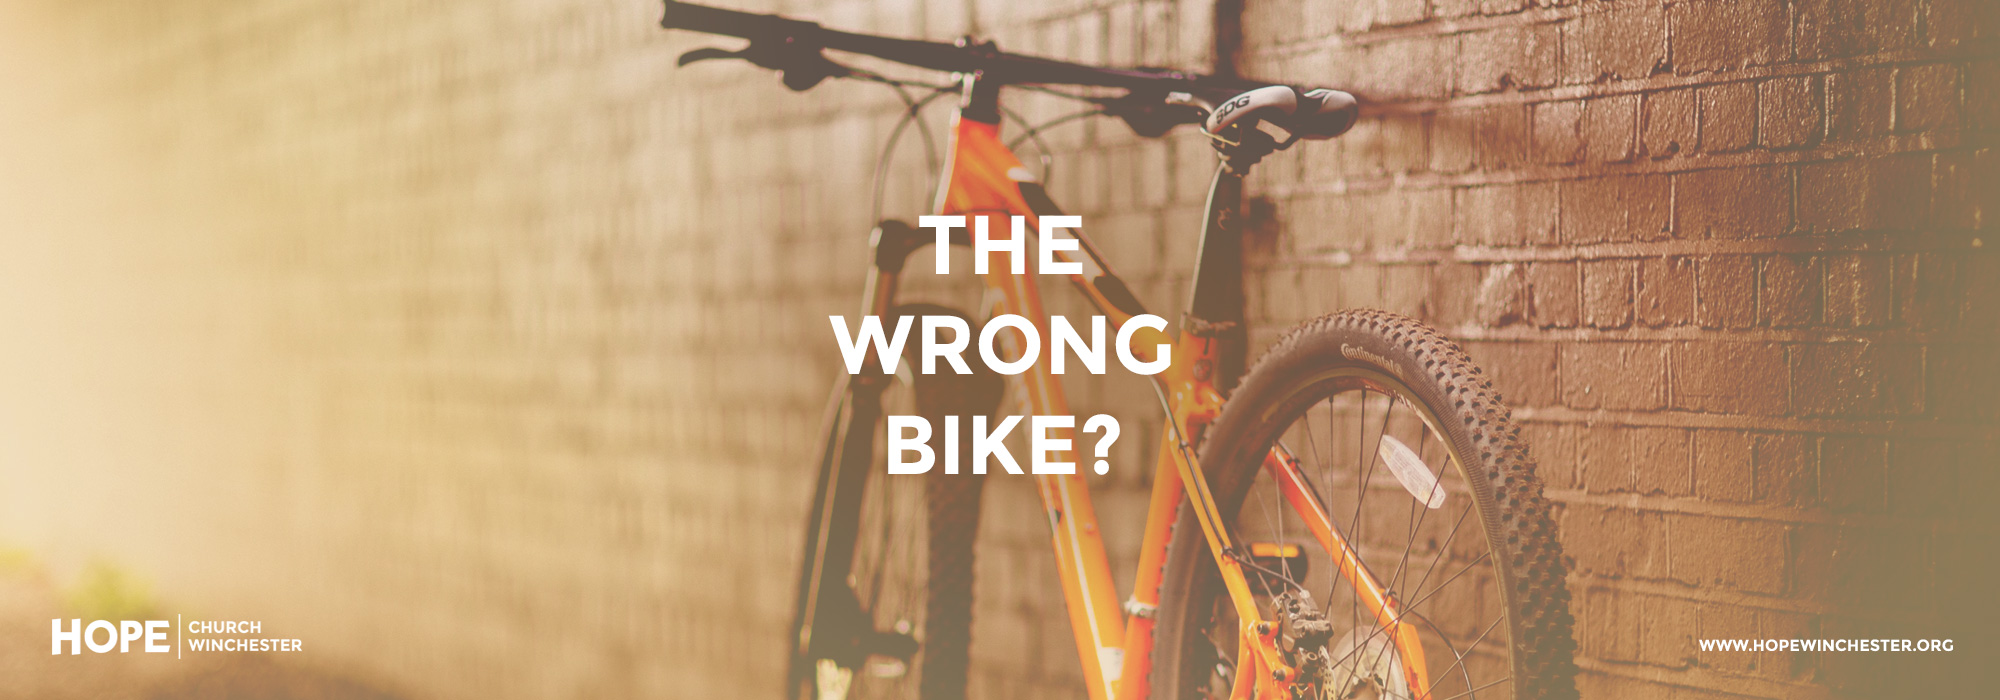 W-Events-TheWrongBike